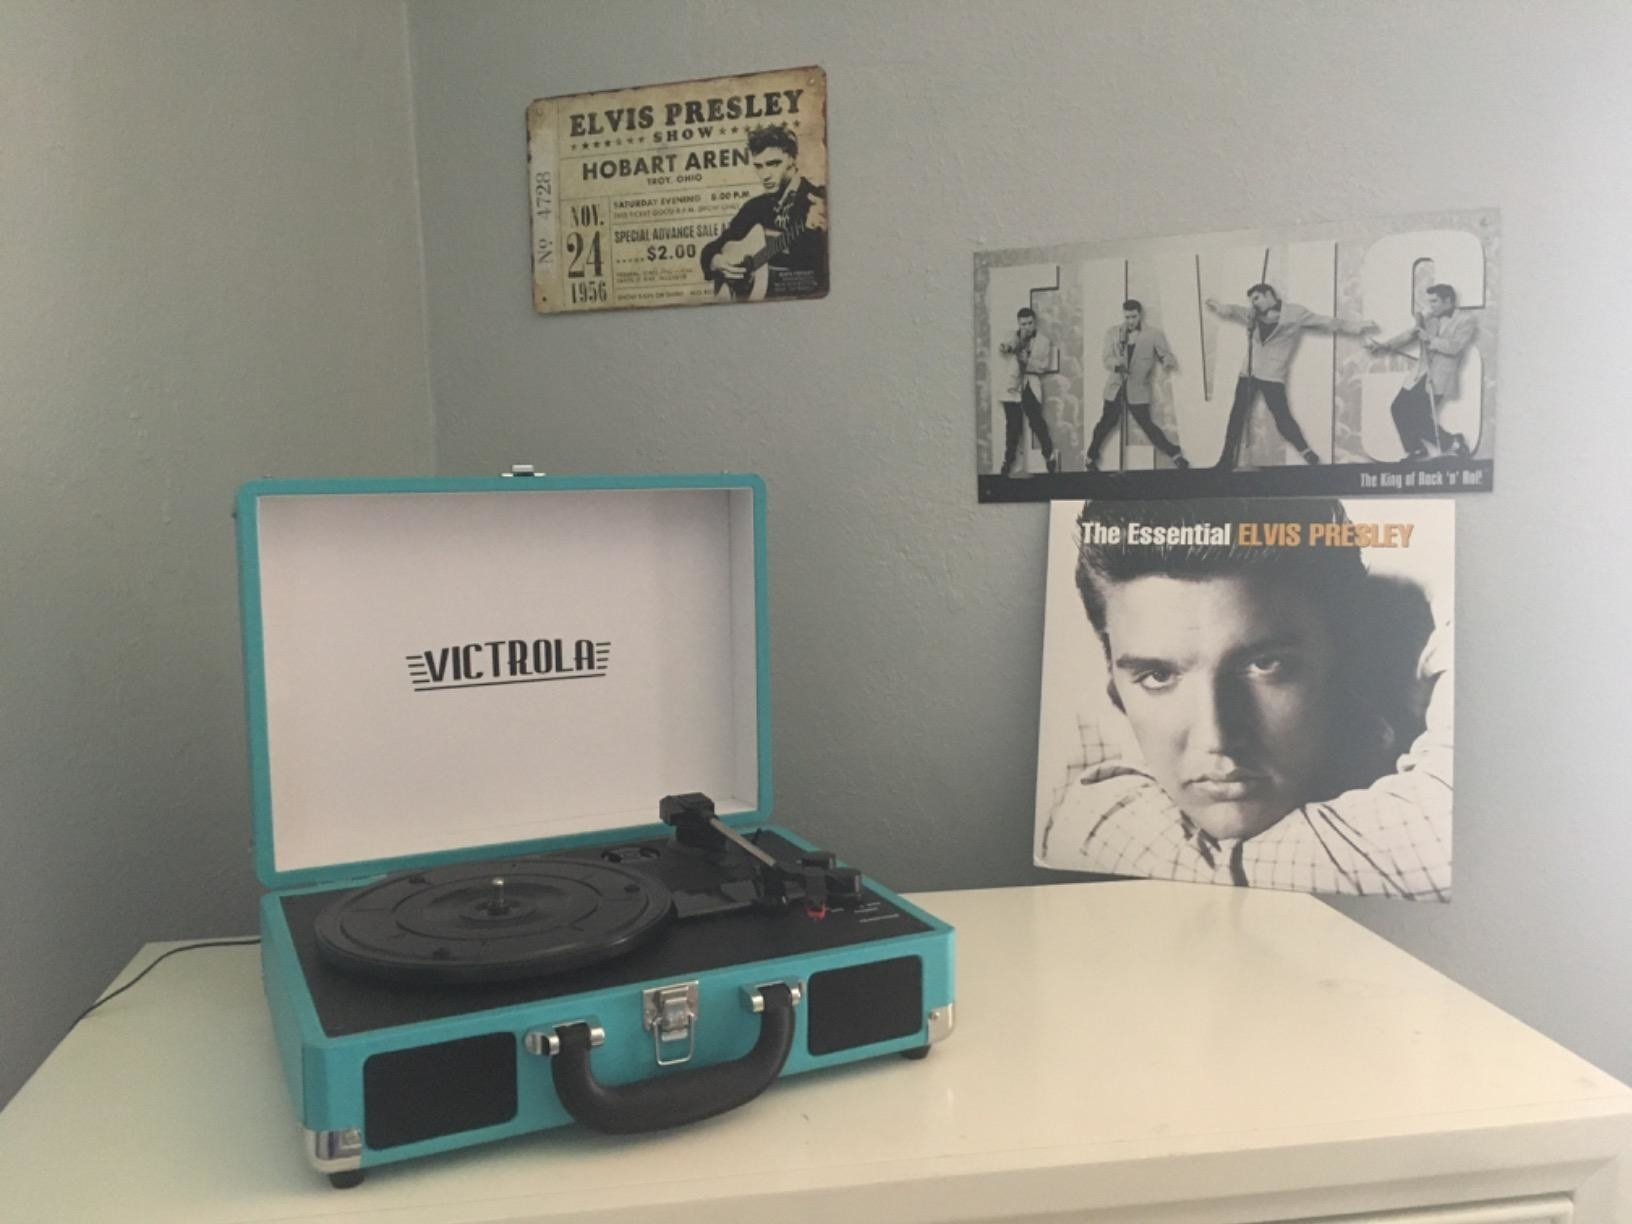 Reviewer pic of the rectangle record player that looks like a suitcase in teal, open, showing the black turn table inside